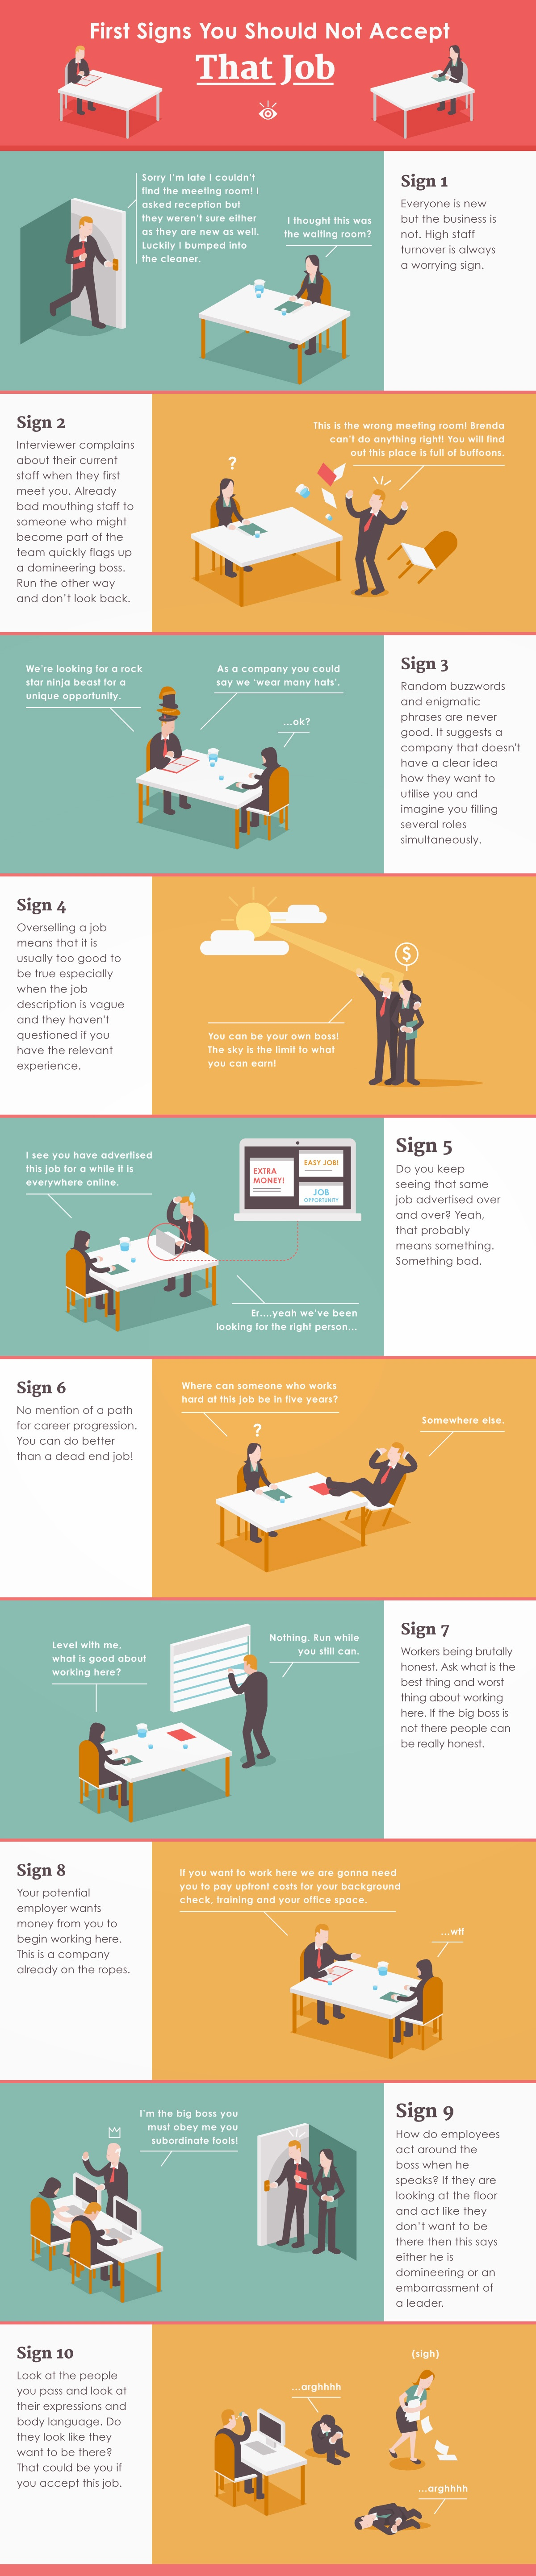 Signs You Should Not Accept That Job [Infographic]